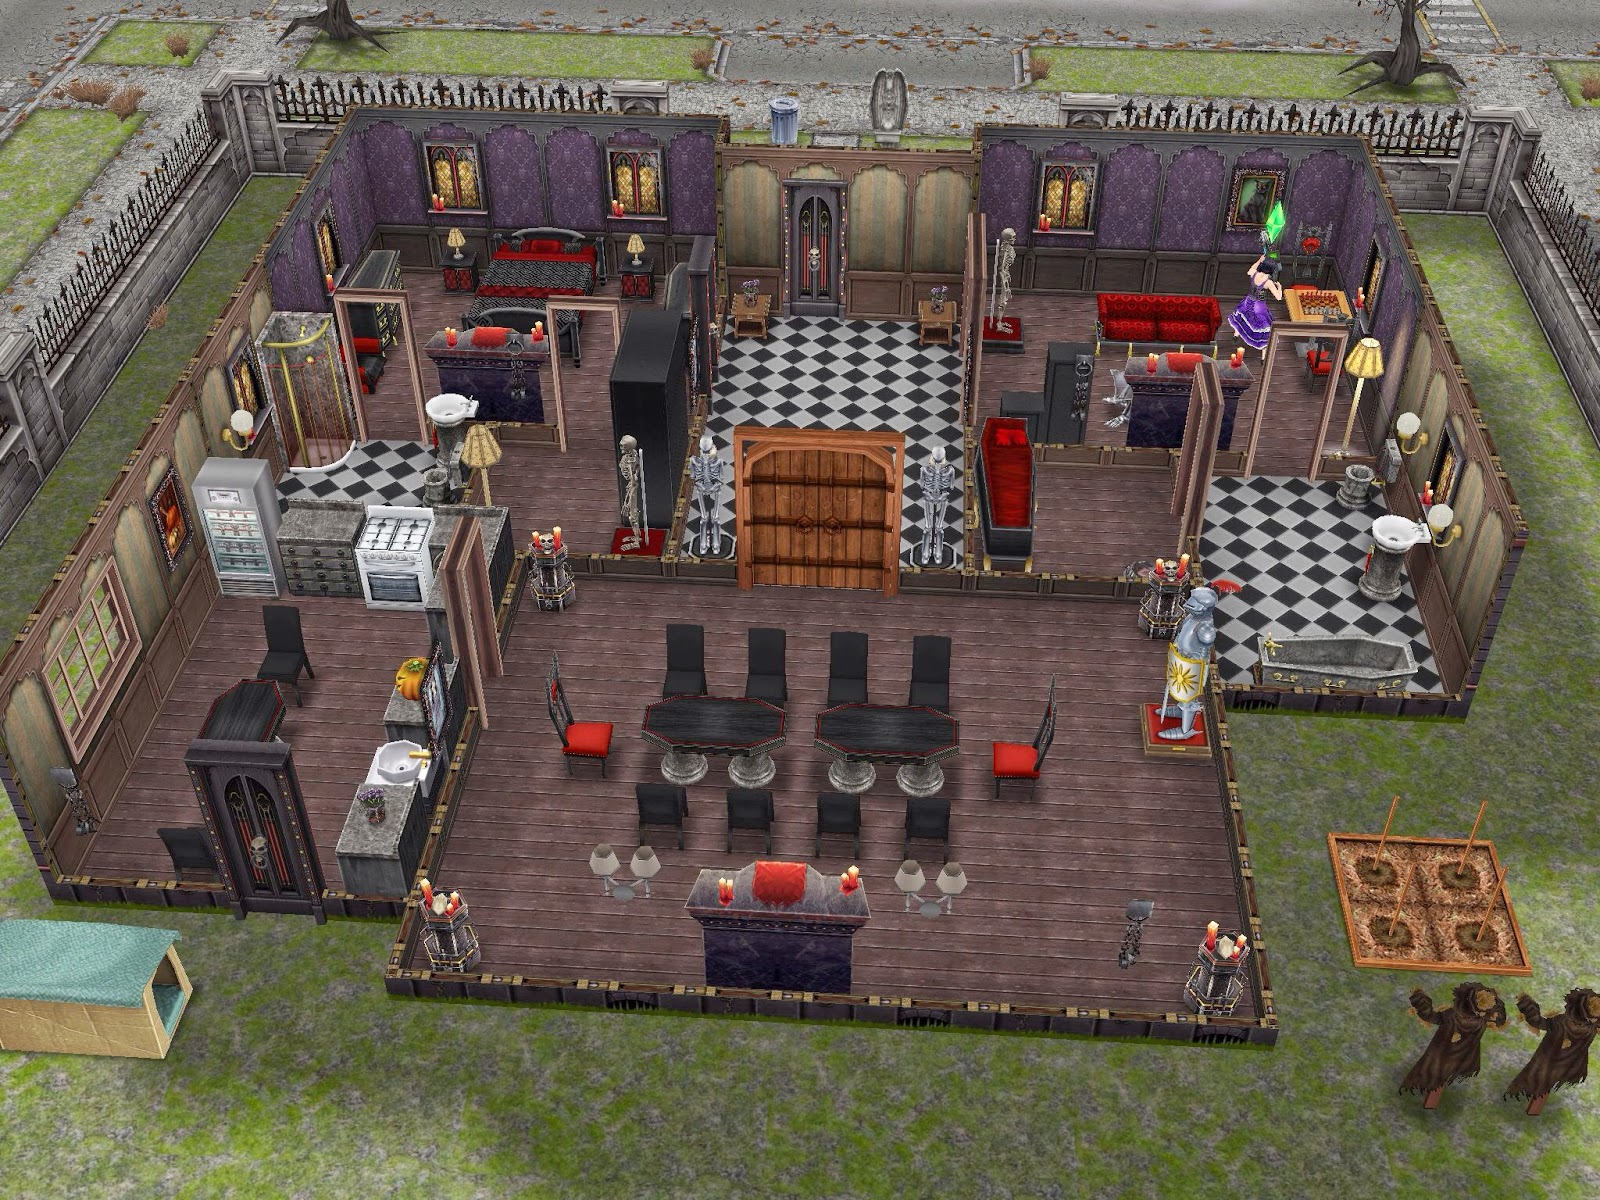 Mod The Sims - The Haunted - A Spooky Haunted Mansion with a ...